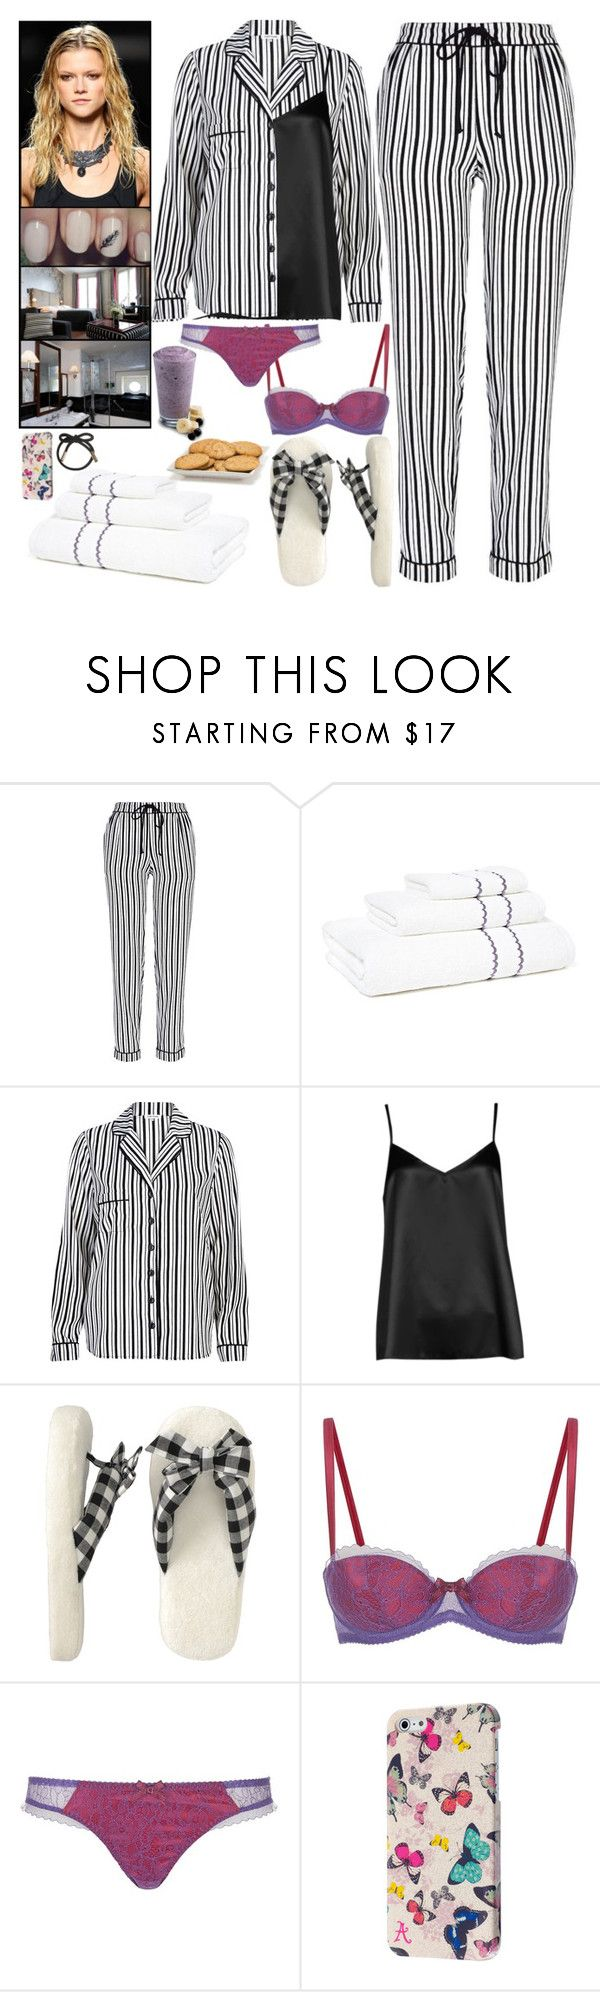 """Day 2: Eating a snack, taking a shower and going to sleep"" by shama25237 ❤ liked on Polyvore featuring River Island, Hamburg House, Boohoo, Aéropostale, Sephora Collection, Agent Provocateur, Accessorize, Topshop, women's clothing and women's fashion"